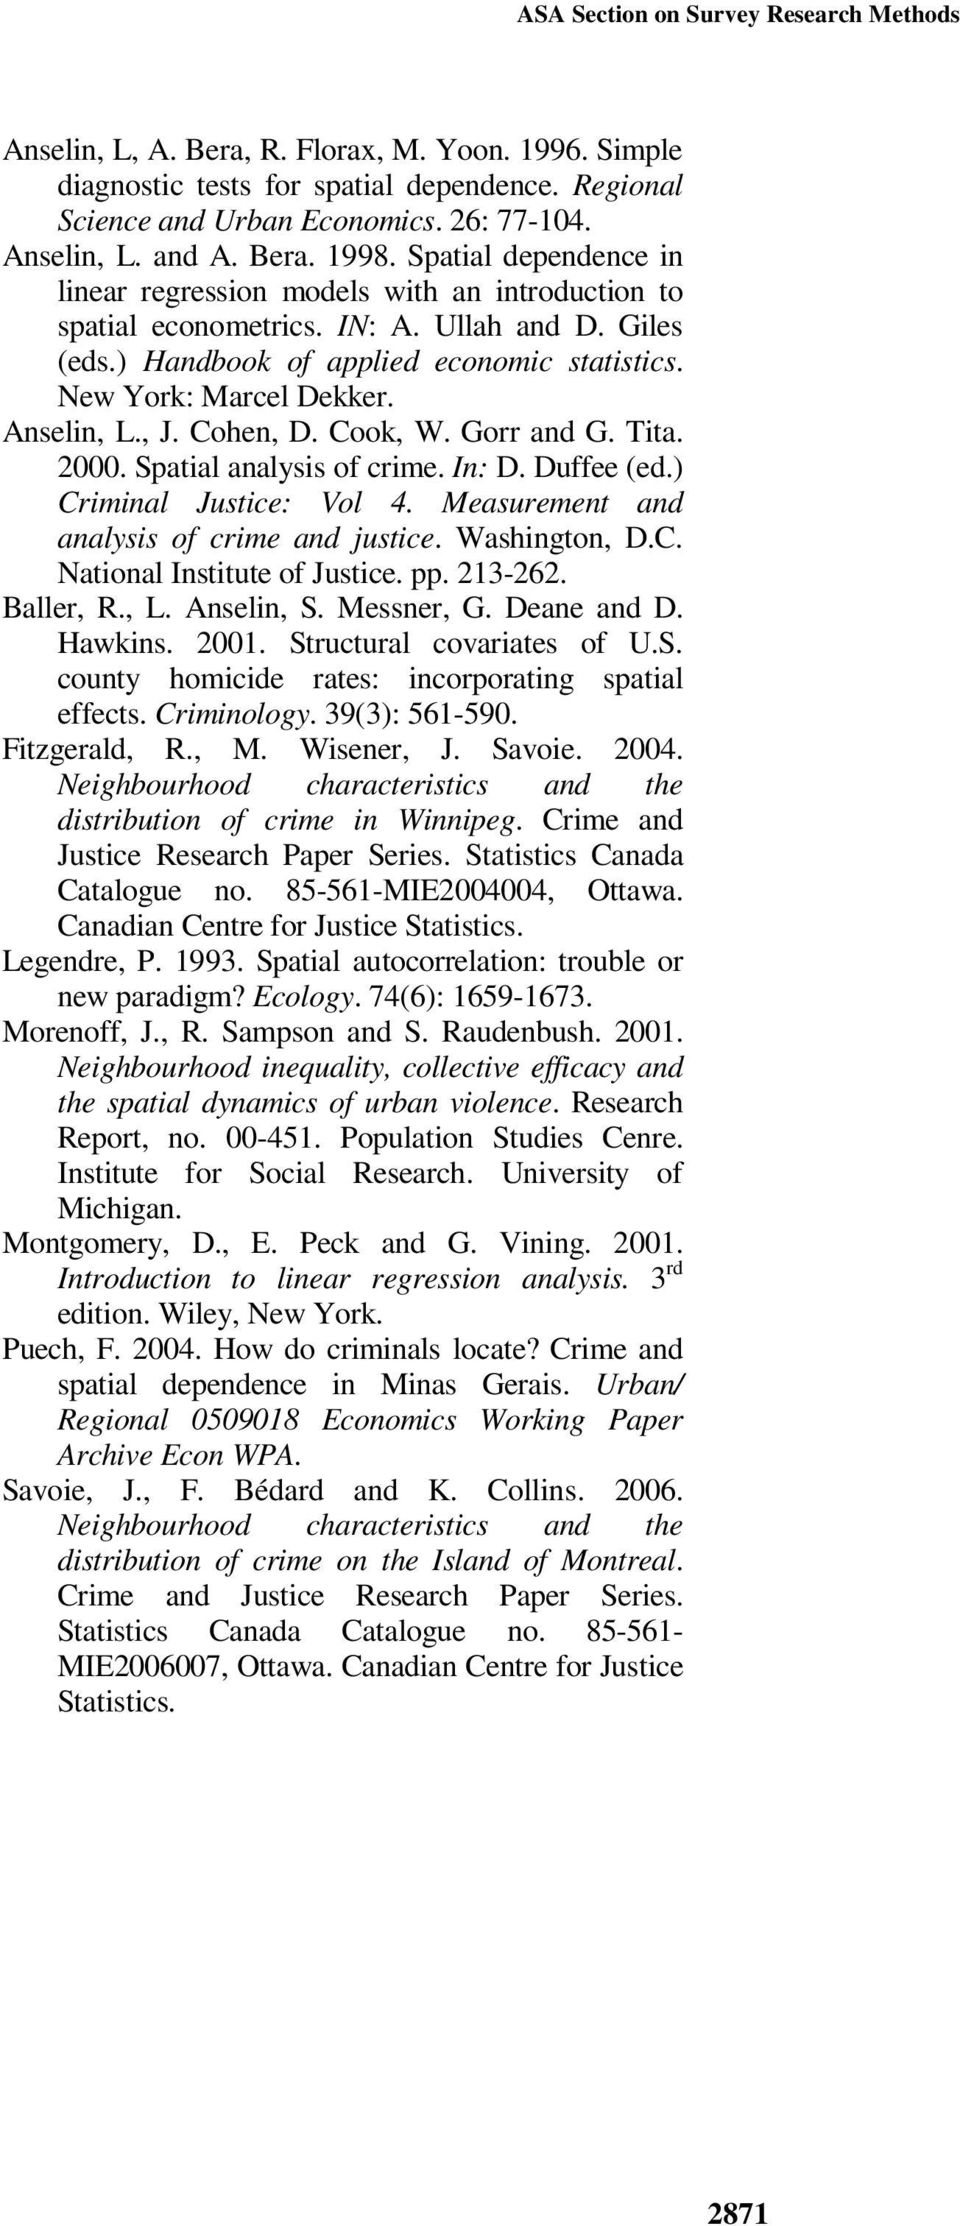 Anselin,., J. Cohen, D. Cook, W. Gorr and G. Tita. 000. Spatial analysis of crime. In: D. Duffee (ed.) Criminal Justice: Vol 4. Measurement and analysis of crime and justice. Washington, D.C. National Institute of Justice.